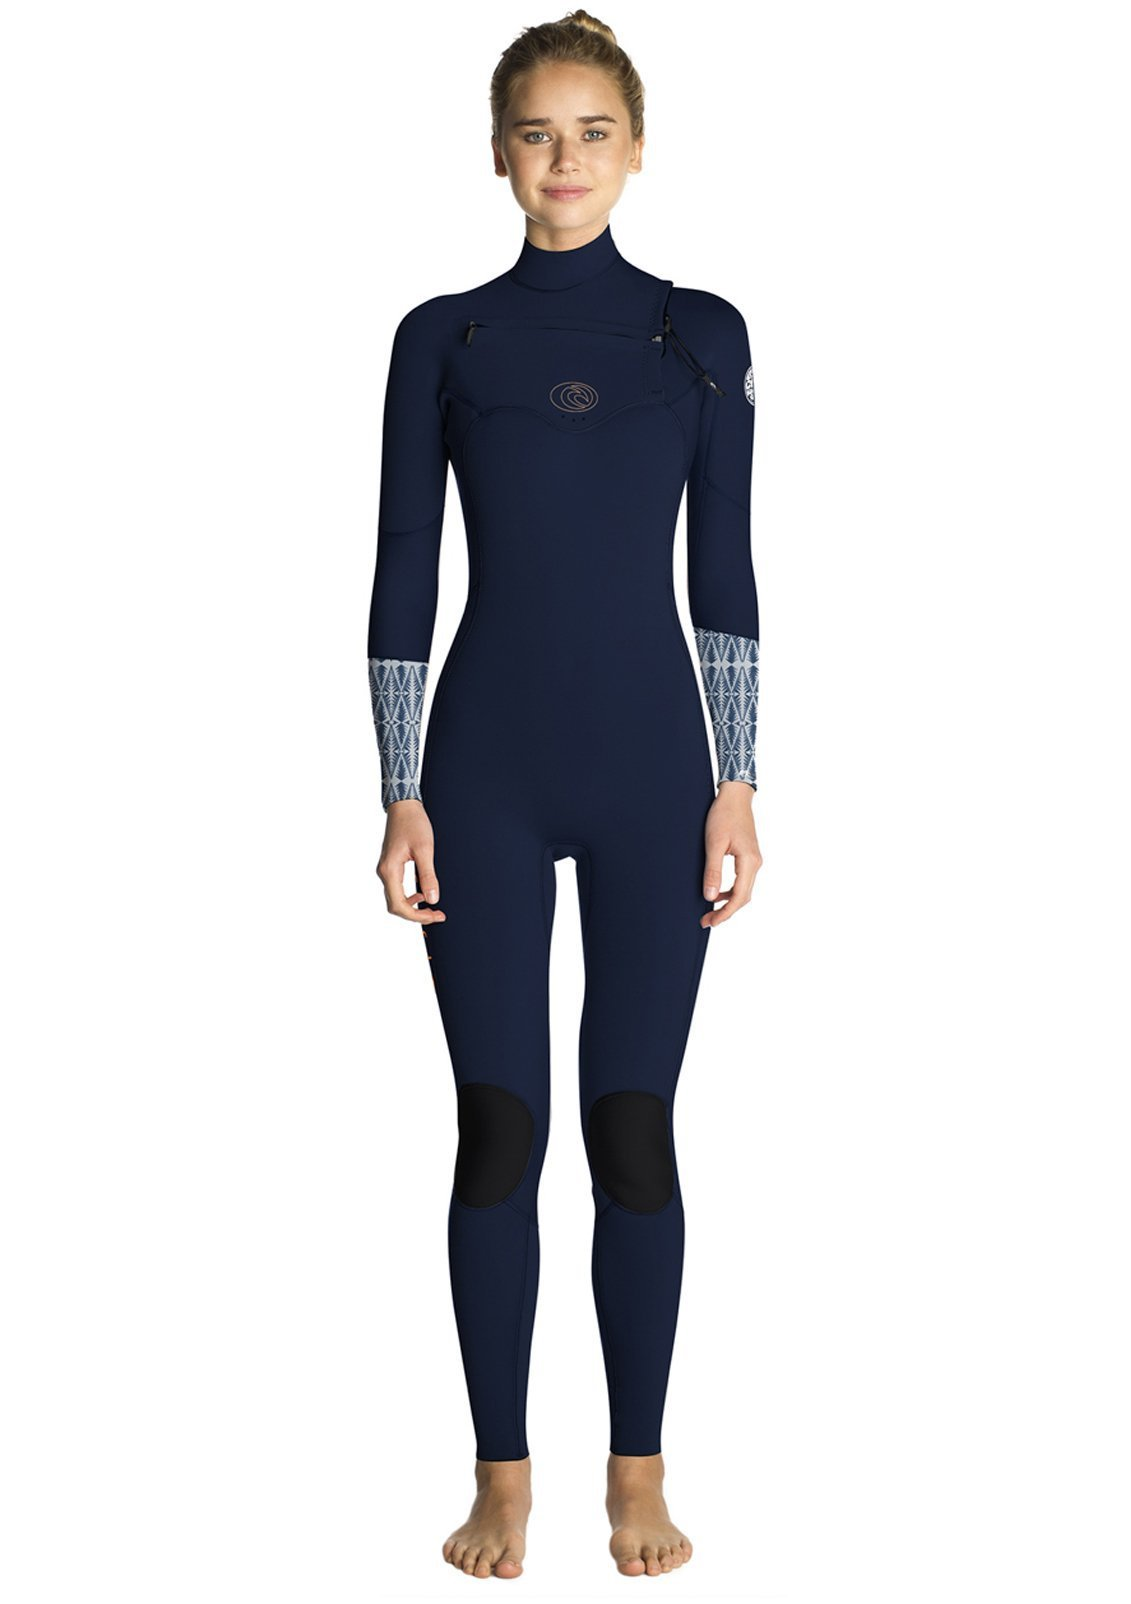 Rip Curl Women's Flashbomb 3/2 Chest Zip Fullsuit Wetsuit